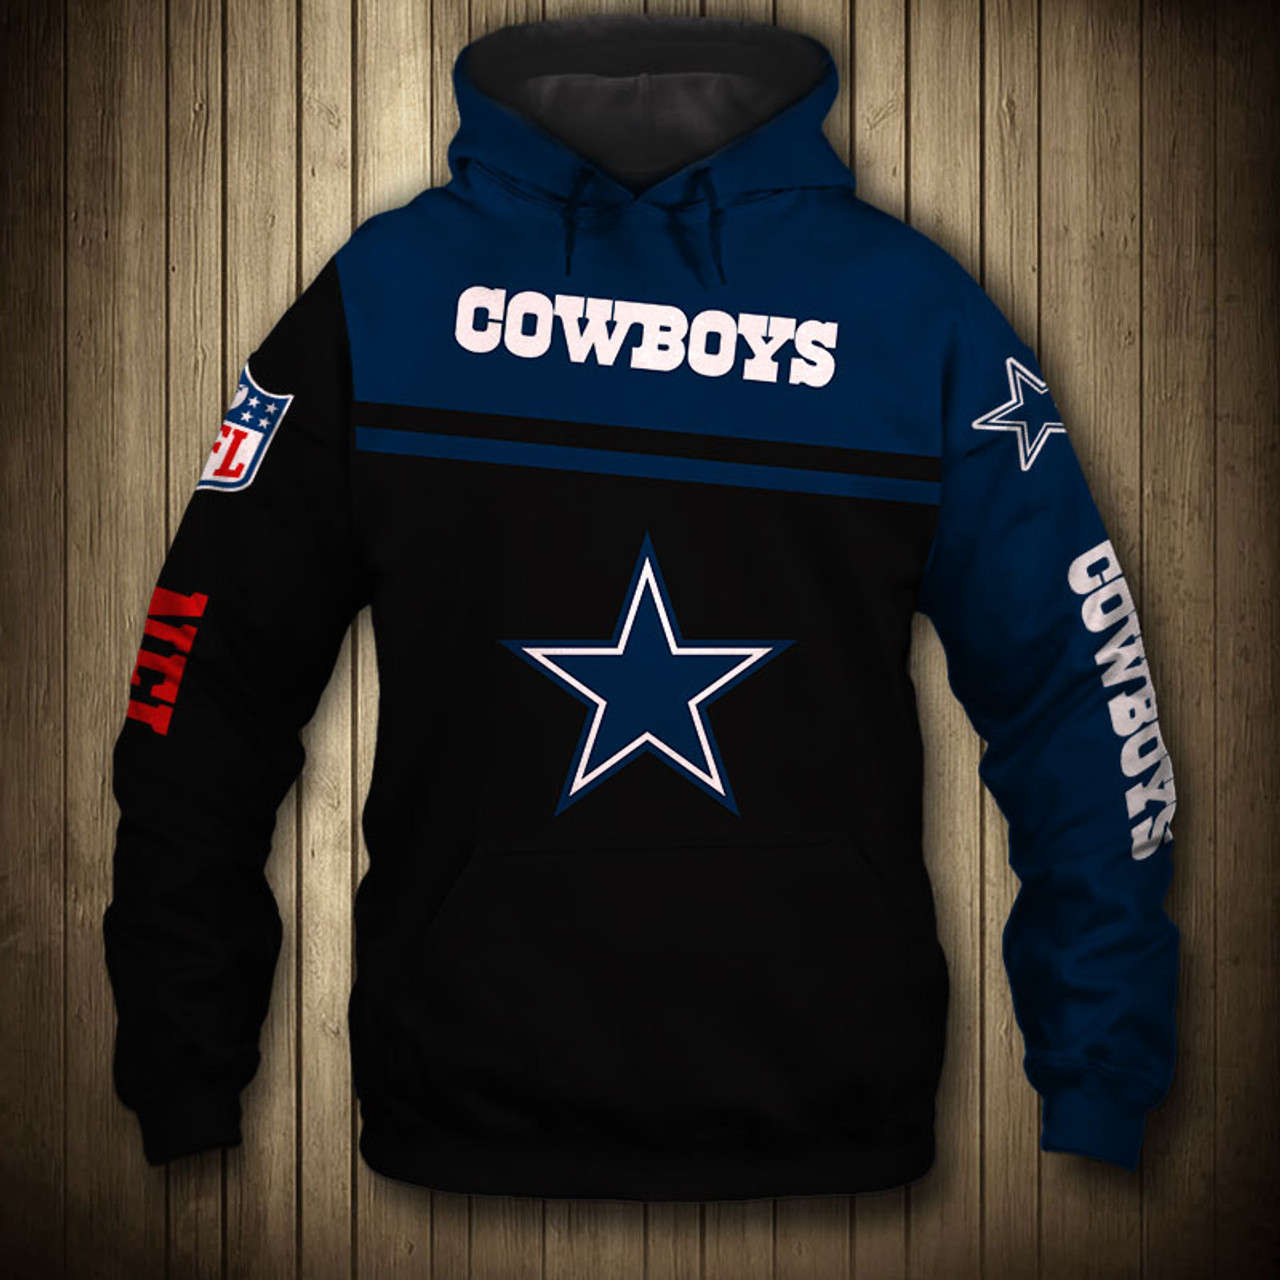 **(OFFICIALLY-LICENSED-N.F.L.DALLAS-COWBOYS-TEAM-PULLOVER-HOODIES/NICE-CUSTOM-3D-GRAPHIC-PRINTED-DOUBLE-SIDED-ALL-OVER-GRAPHIC-COWBOYS-LOGOS & OFFICIAL-COWBOYS-TEAM-COLORS/WARM-PREMIUM-OFFICIAL-N.F.L.COWBOYS-TEAM-PULLOVER-DEEP-POCKET-HOODIES)**